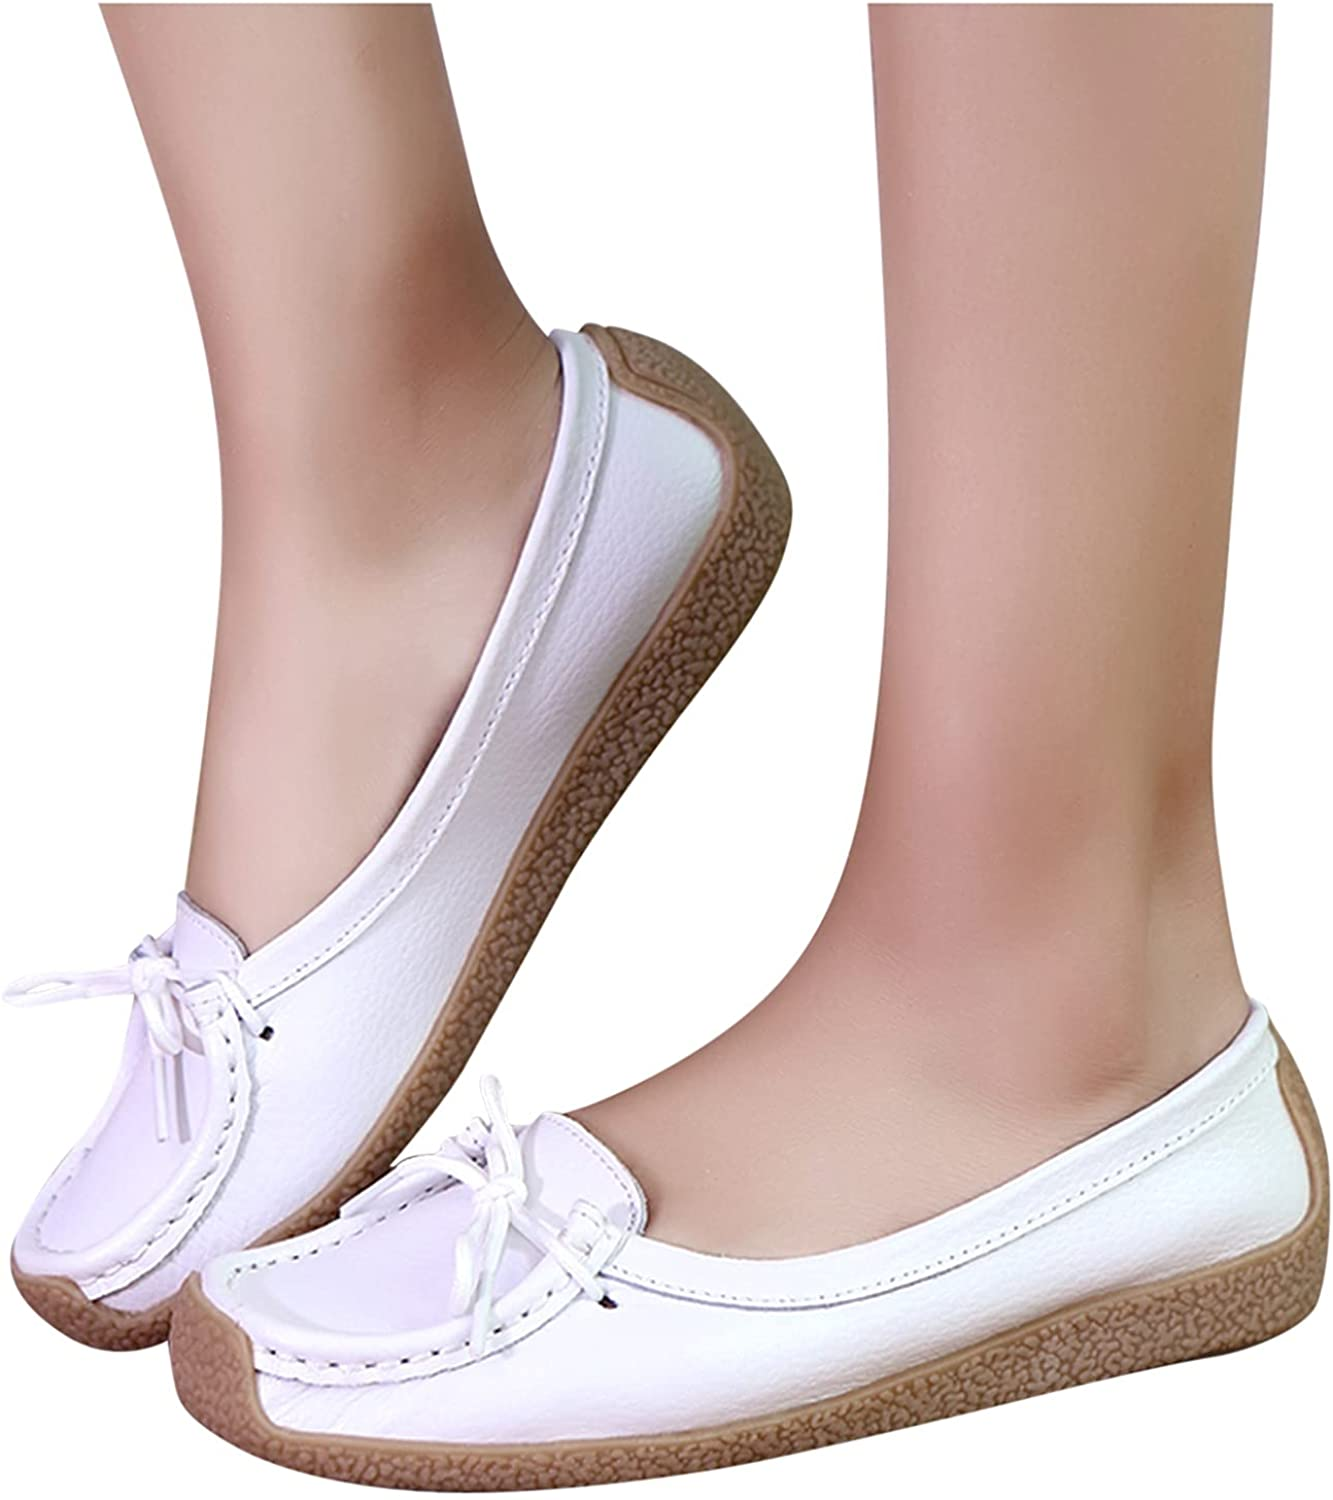 Womens Casual Slip On Shoes Max 64% OFF Leisure Sales of SALE items from new works Soft Bottom Ro Women Slip-On